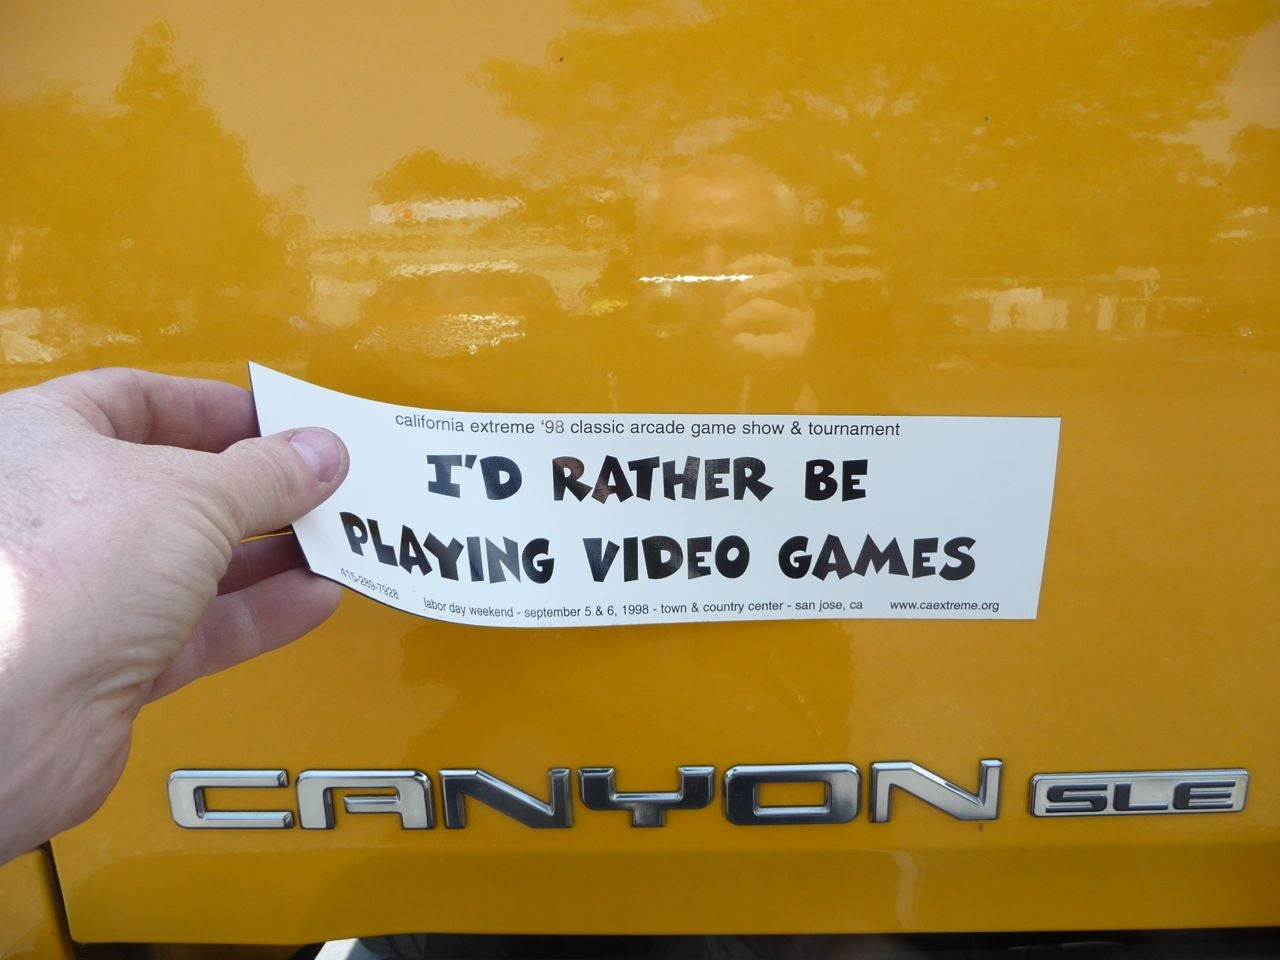 Removable custom bumper stickers